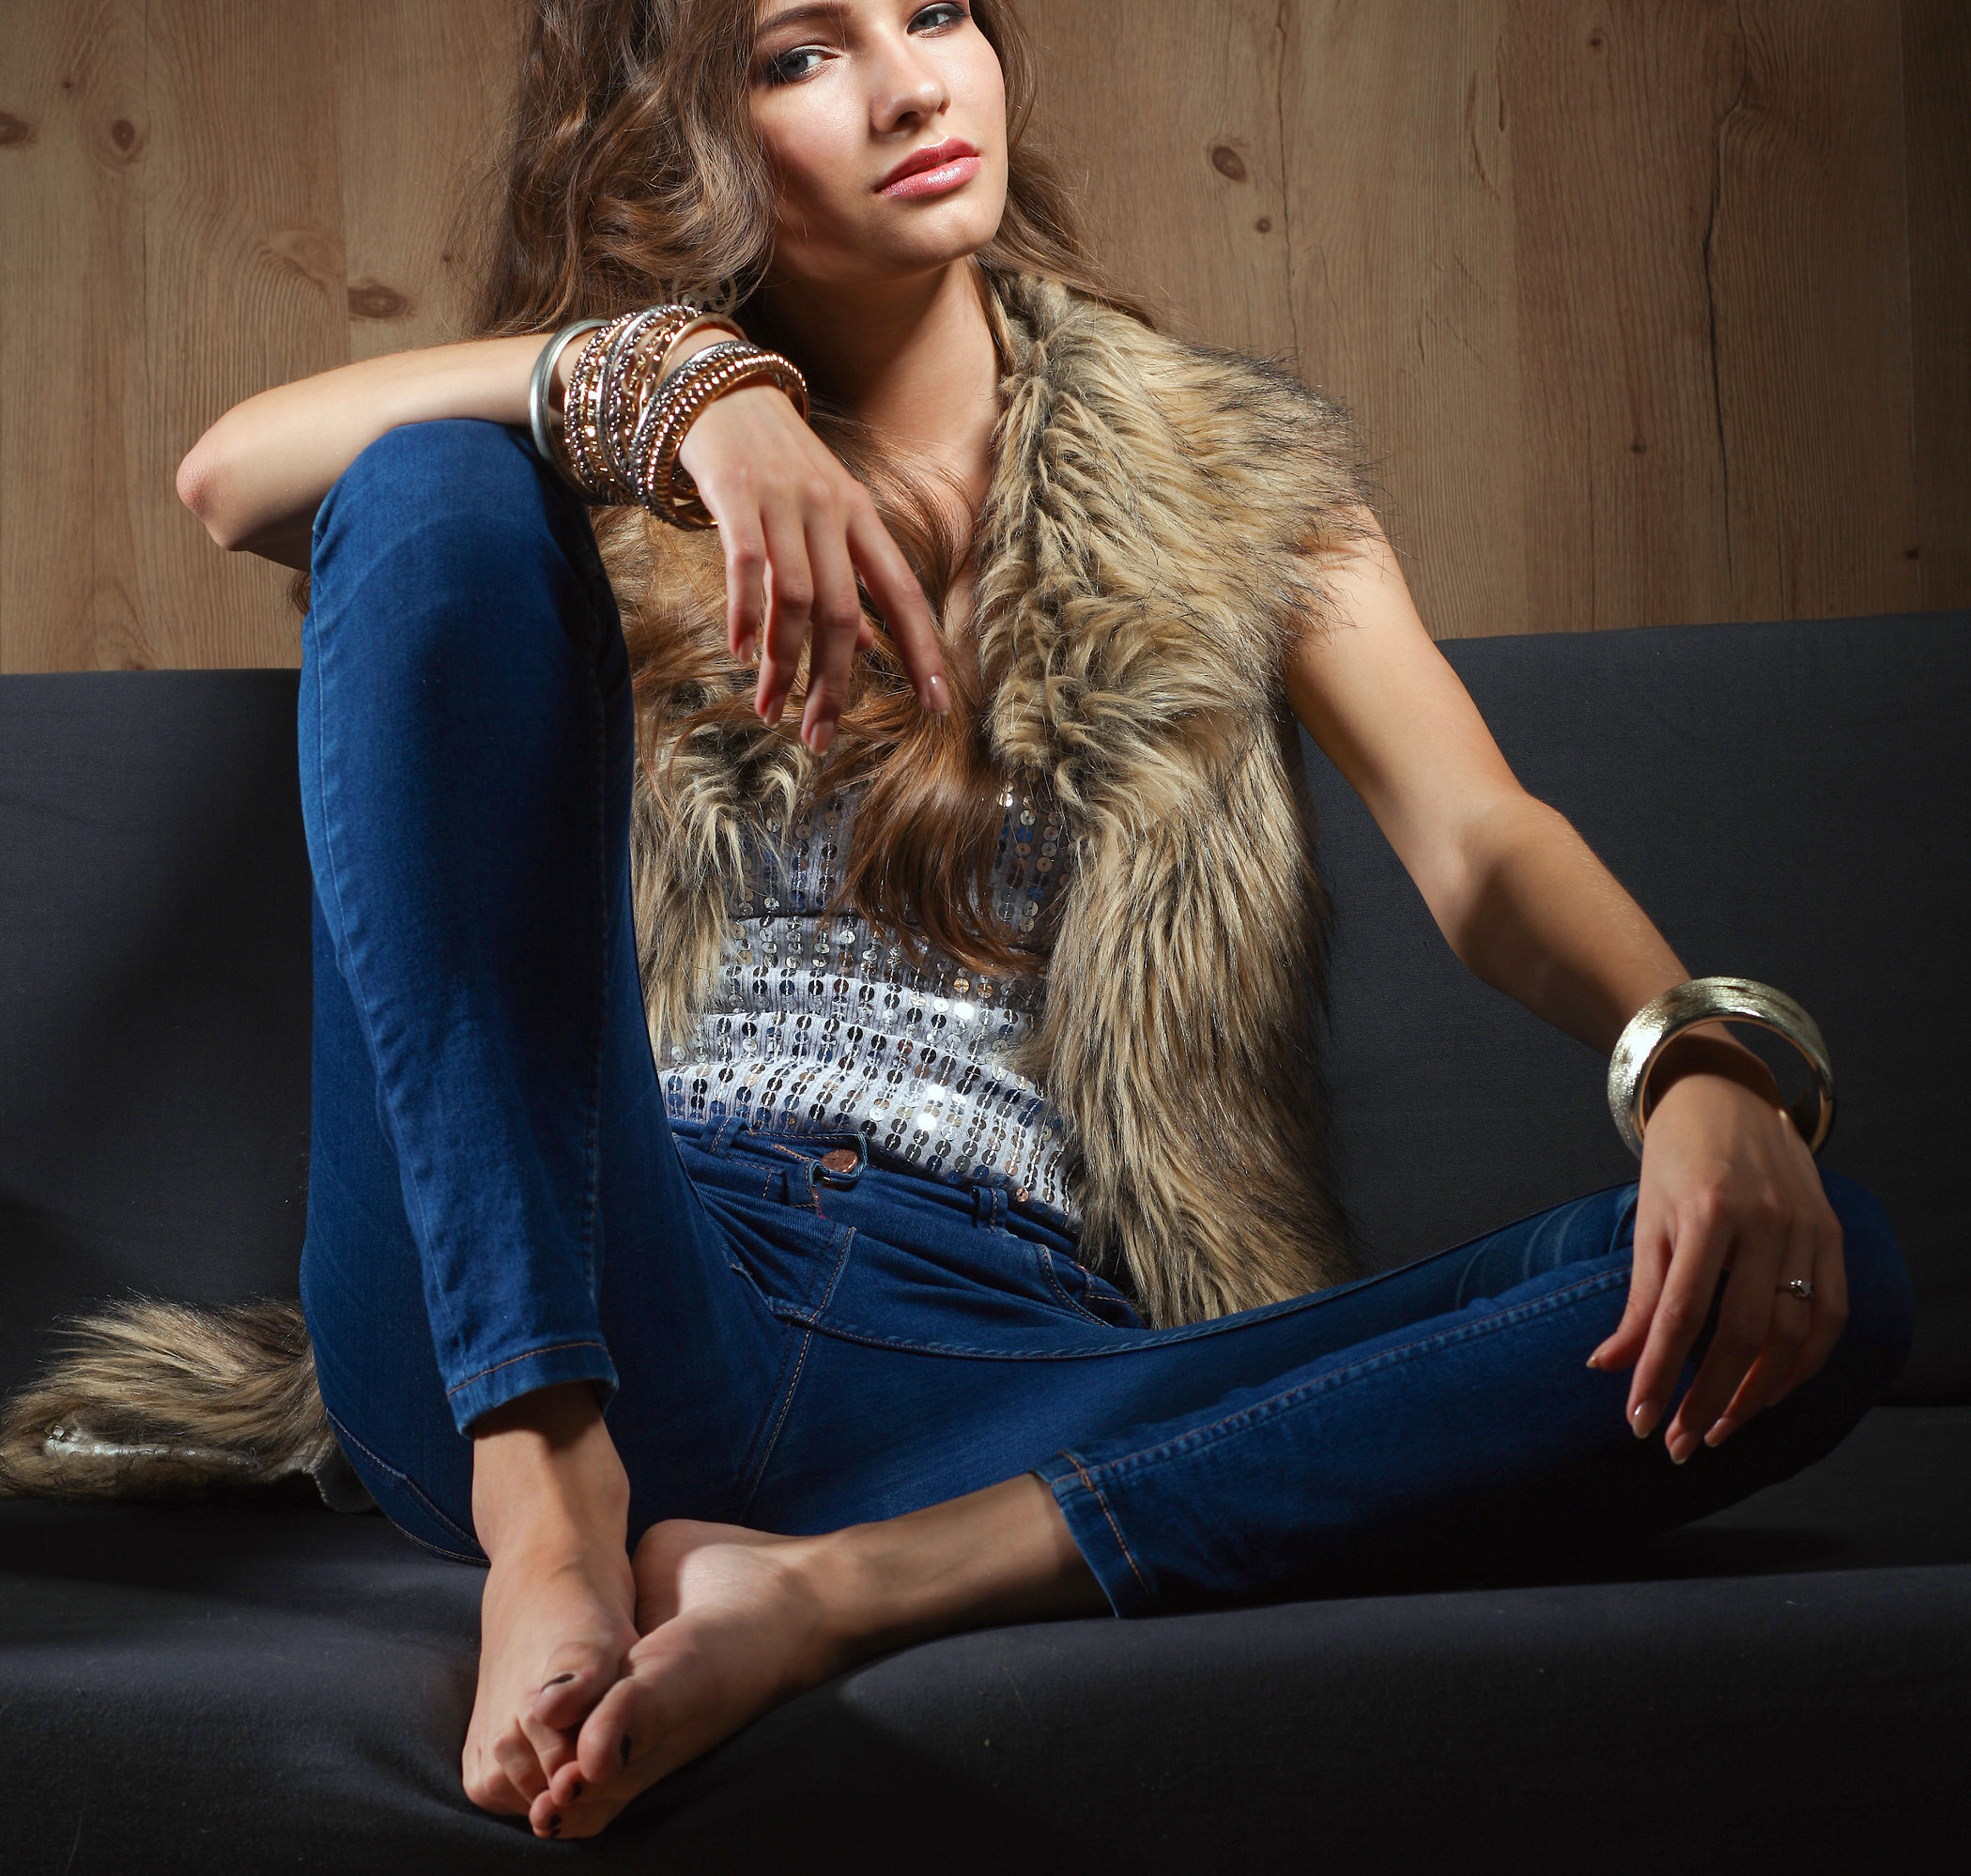 61832418 - portrait of a elegant woman sitting on a black sofa wearing a blue jeans and fur vest